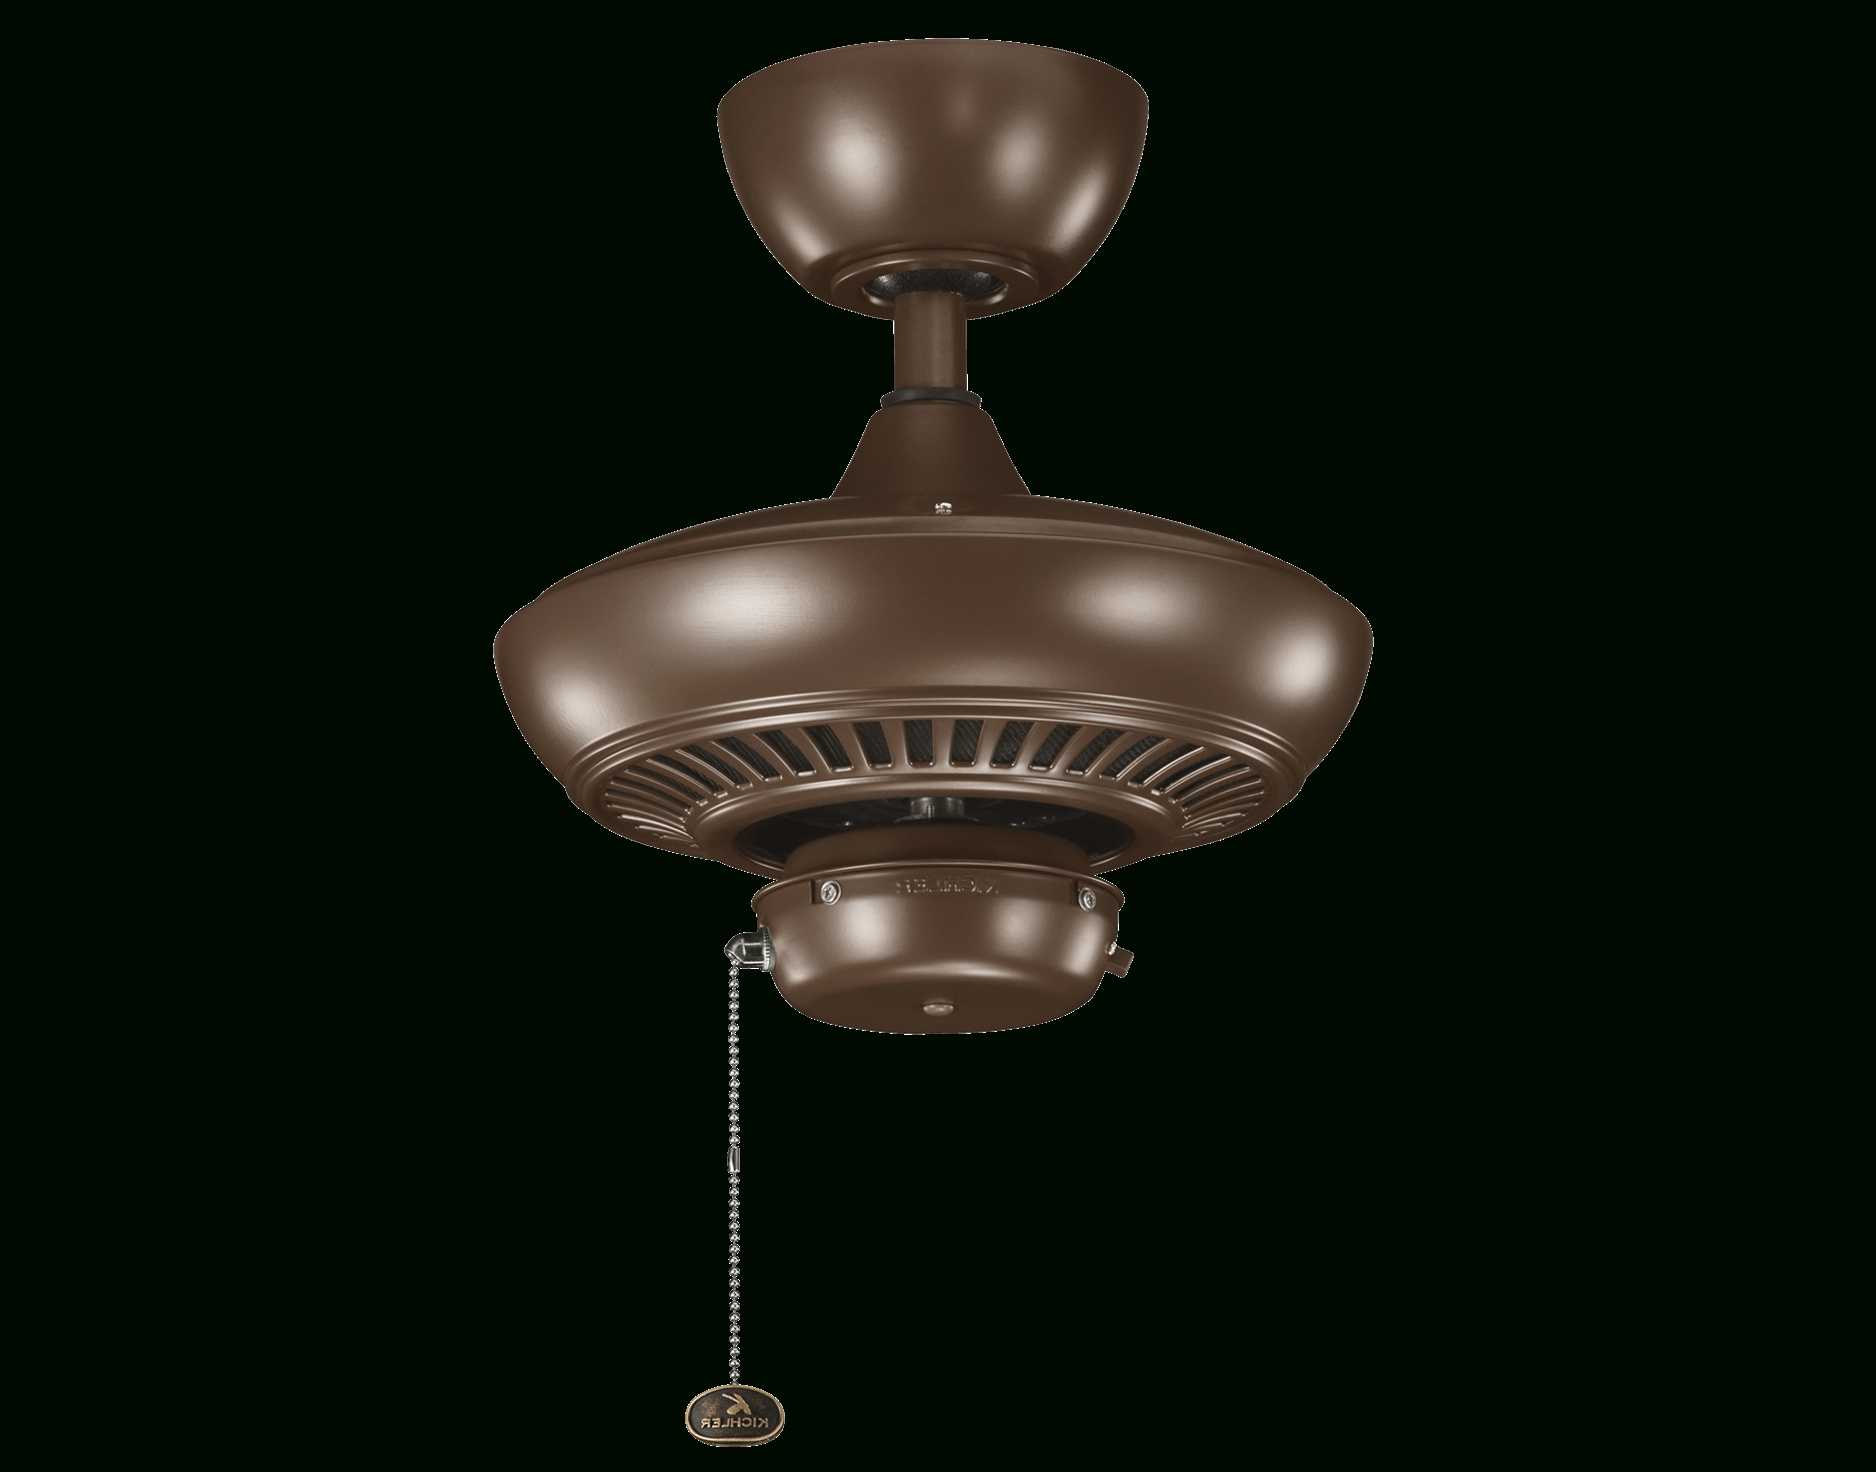 Awesome Outdoor Ceiling Light With Pull Chain – Divineducation Pertaining To Most Popular Outdoor Ceiling Fans With Pull Chain (View 19 of 20)